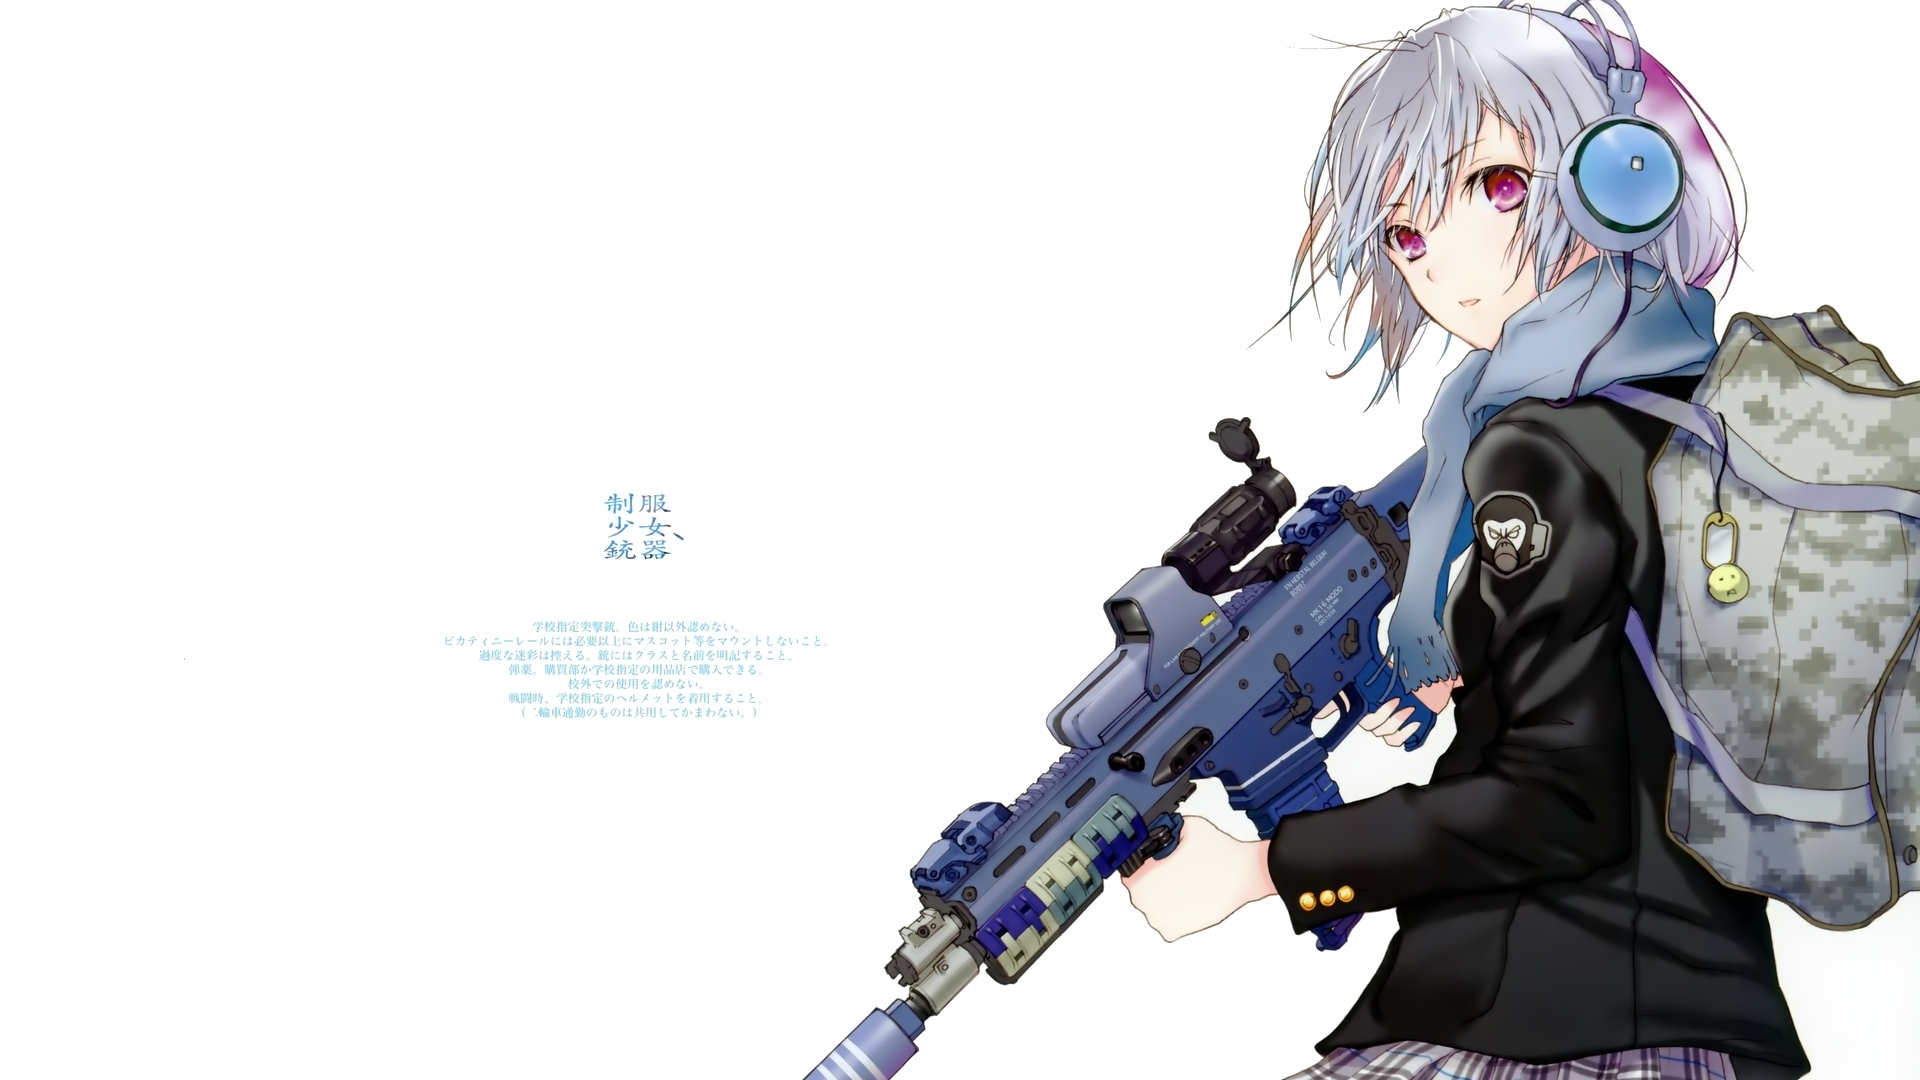 Anime sniper girl Wallpaper 662 1920x1080